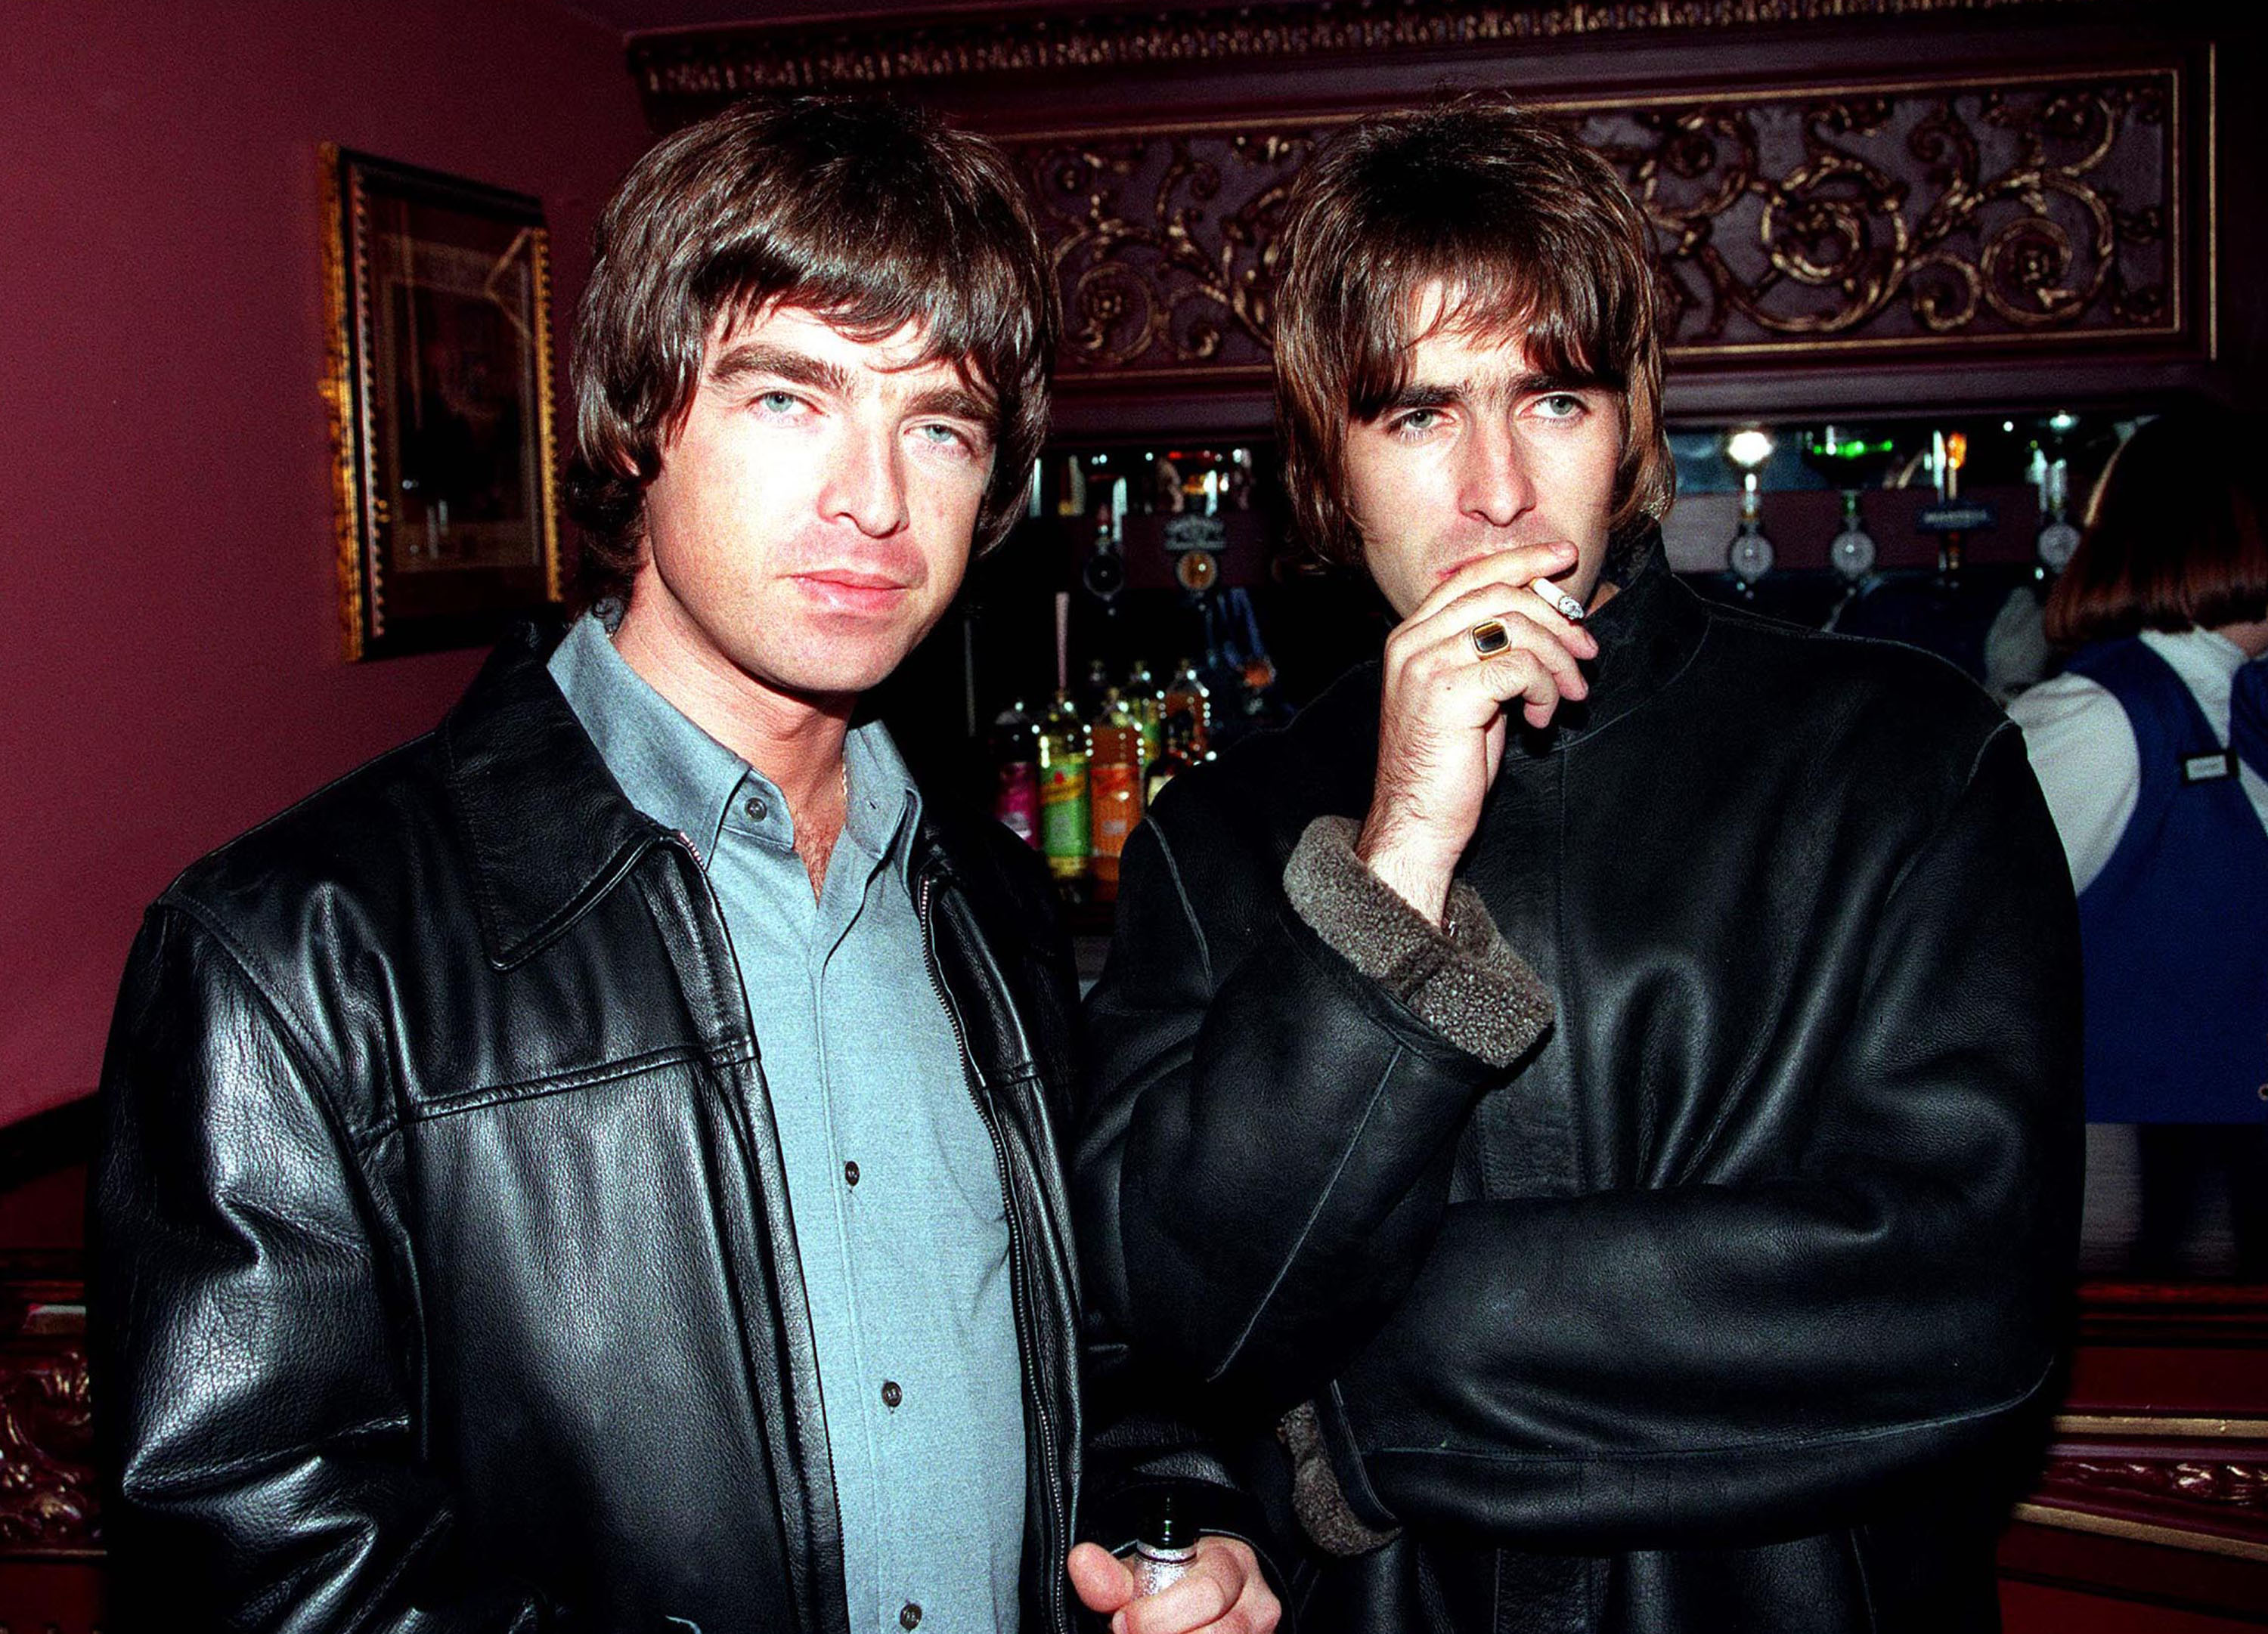 Oasis Reunion Hope As Liam Says Hes Seeing Noel For Christmas GettyImages 51129222